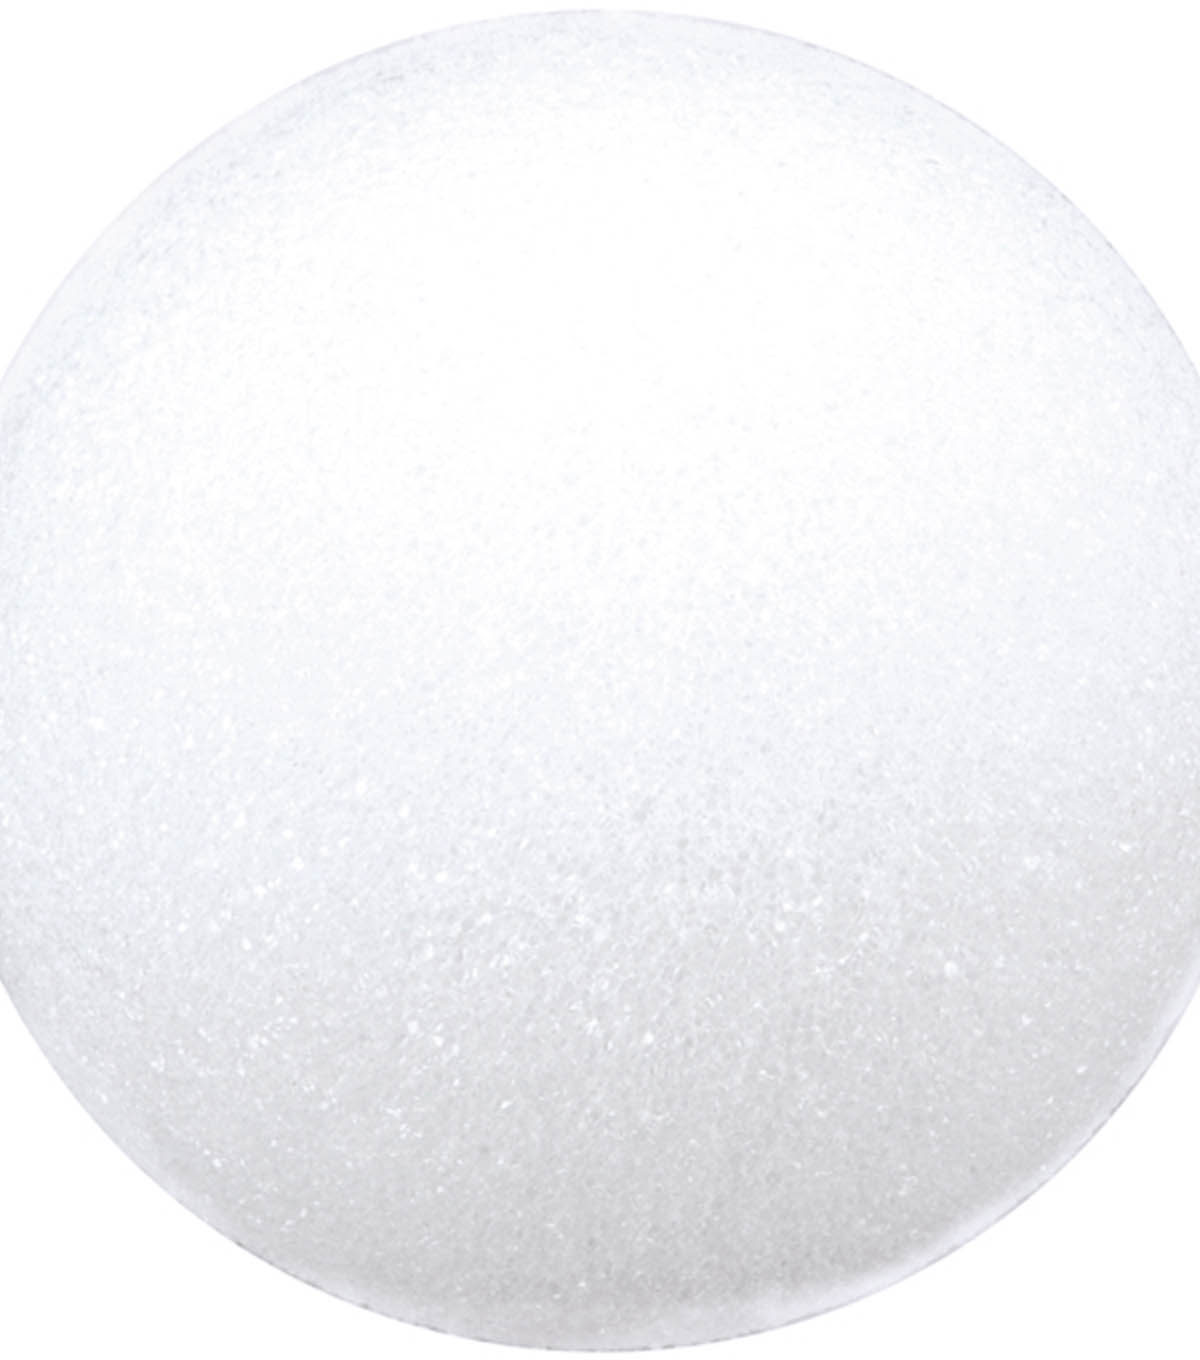 Floracraft 4n Styrofoam Ball 3pk-White